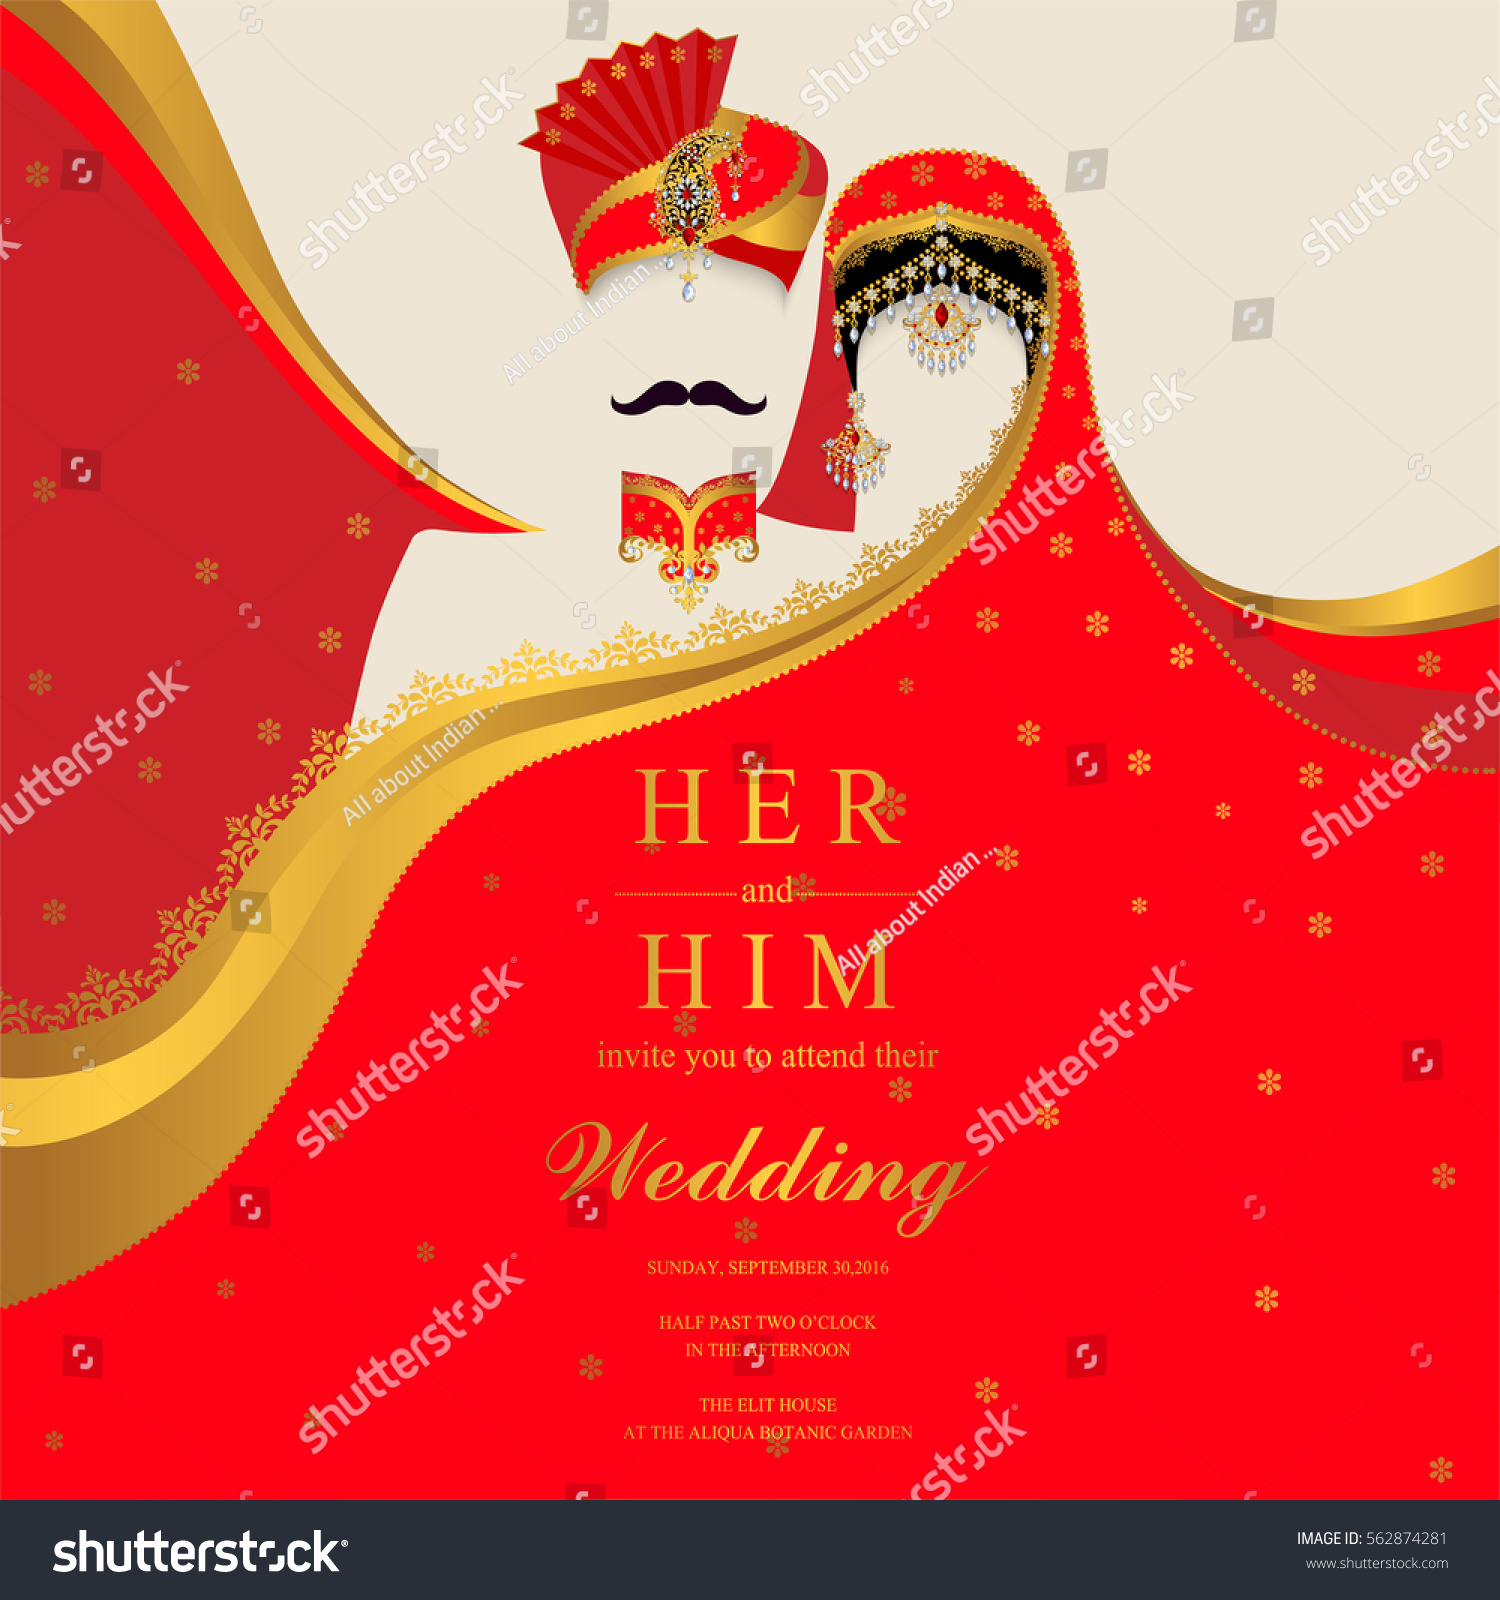 Indian Wedding Invitation Card Templates Patterned Stock Vector HD ...